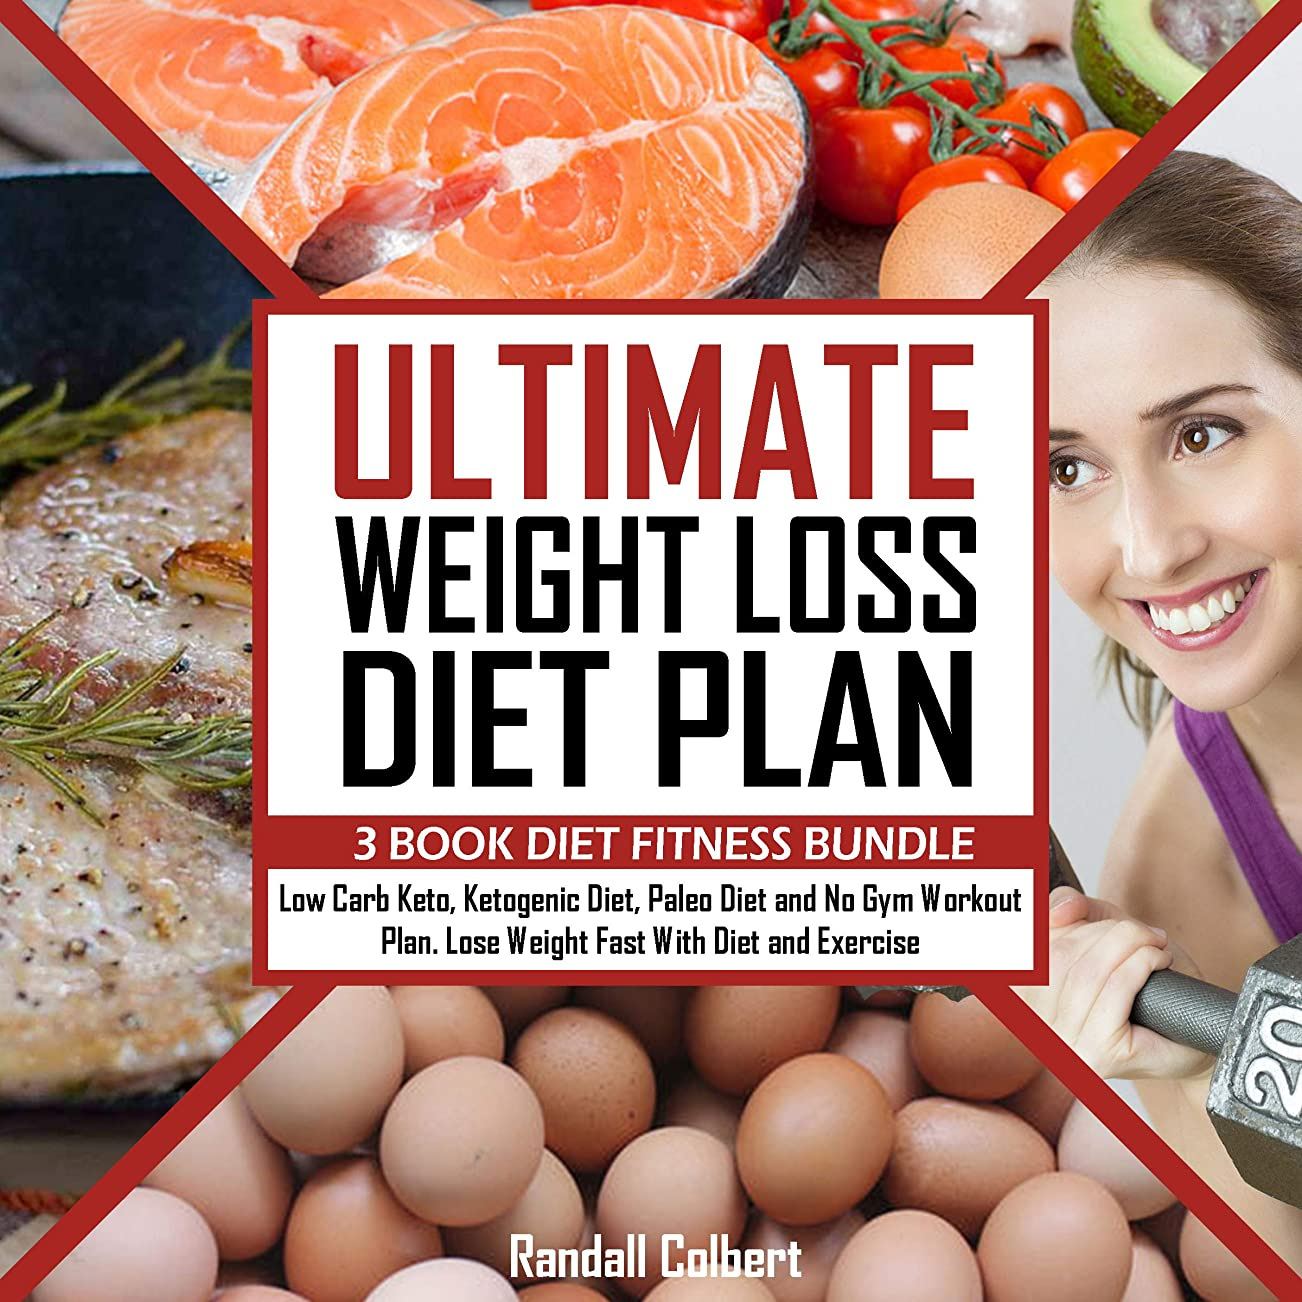 Ultimate Weight Loss Diet Plan - 3 Book Diet Fitness Bundle: Low Carb Keto, Ketogenic Diet, Paleo Diet and No Gym Workout Plan. Lose Weight Fast With Diet and Exercise (English Edition)